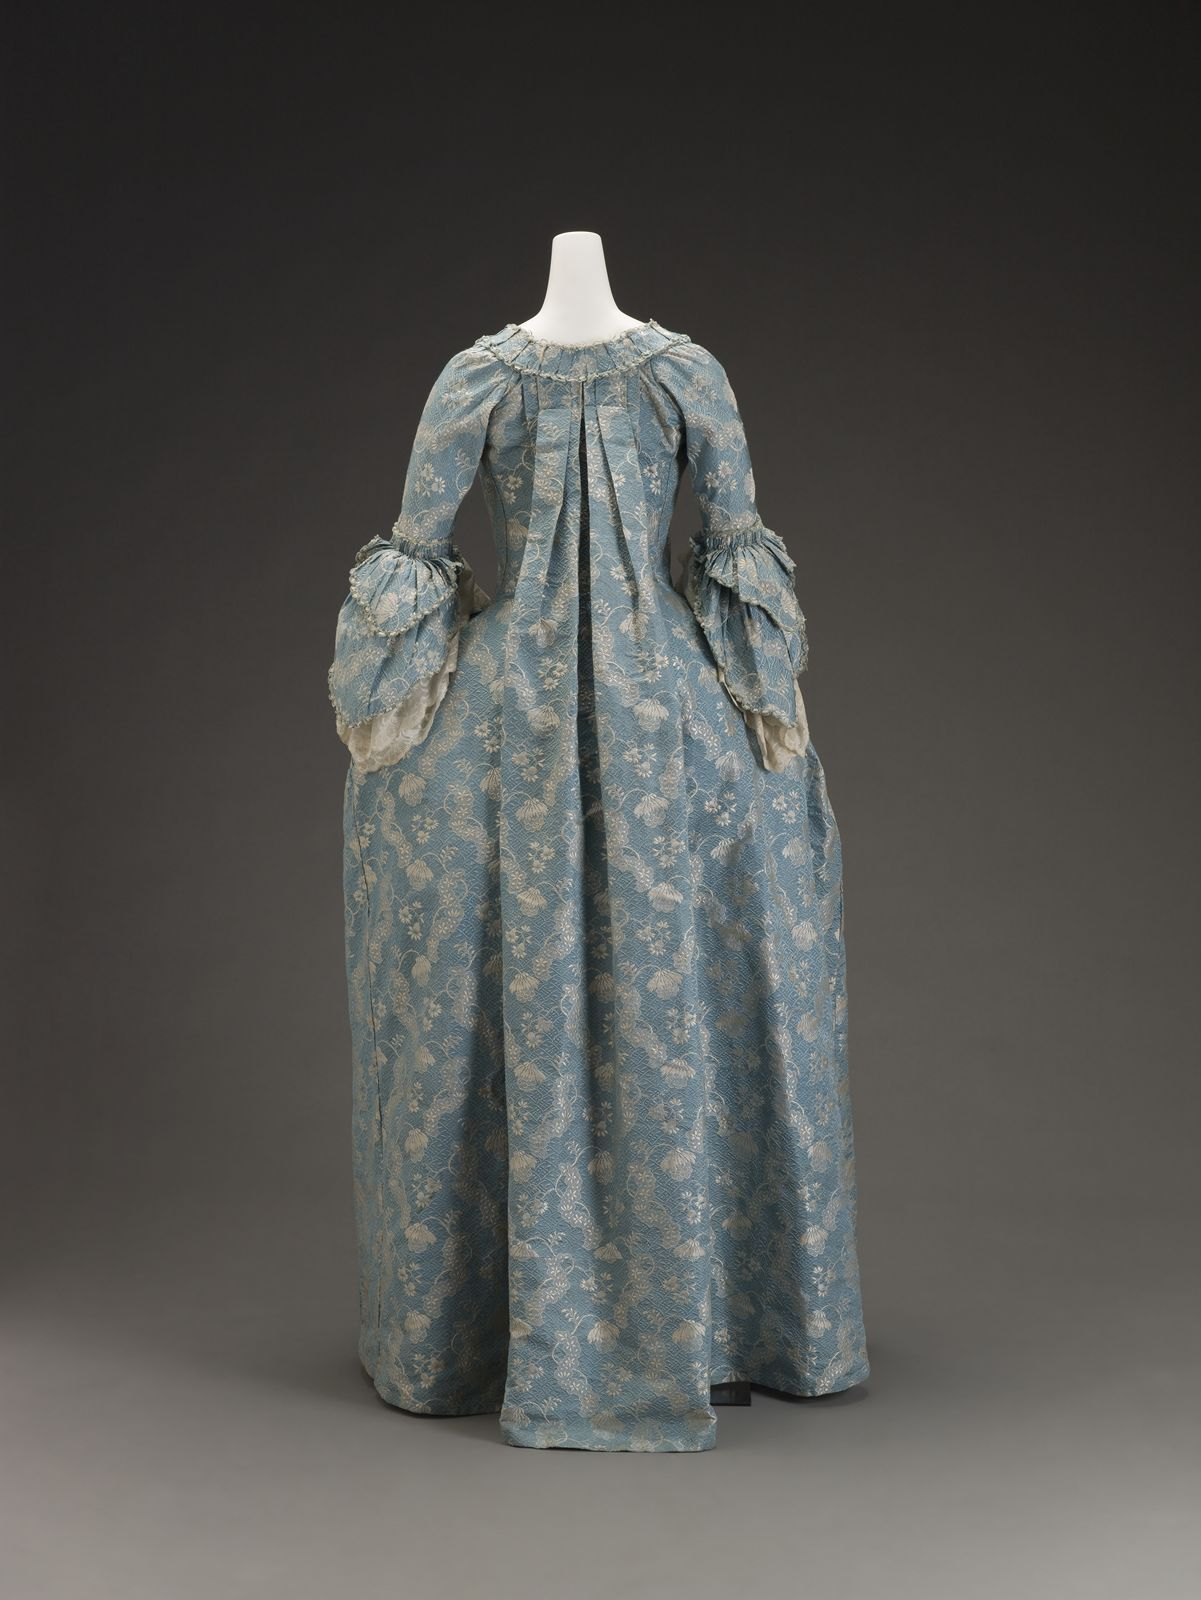 Back view: Dress, French, c 1760, silk brocade. Indianapolis Museum of Art.